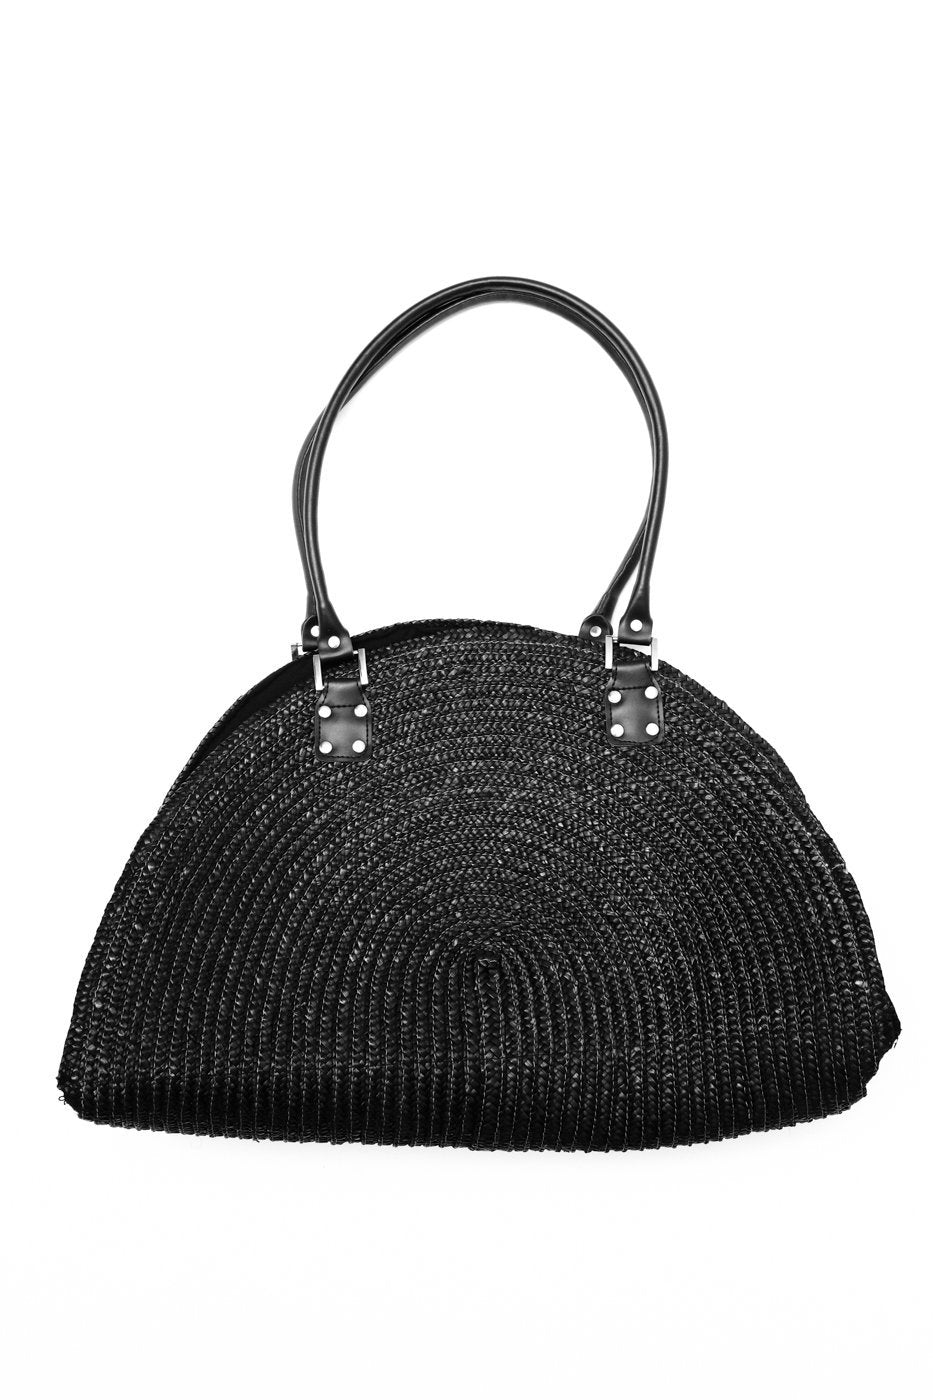 0469_XL BLACK HALF MOON STRAW BAG